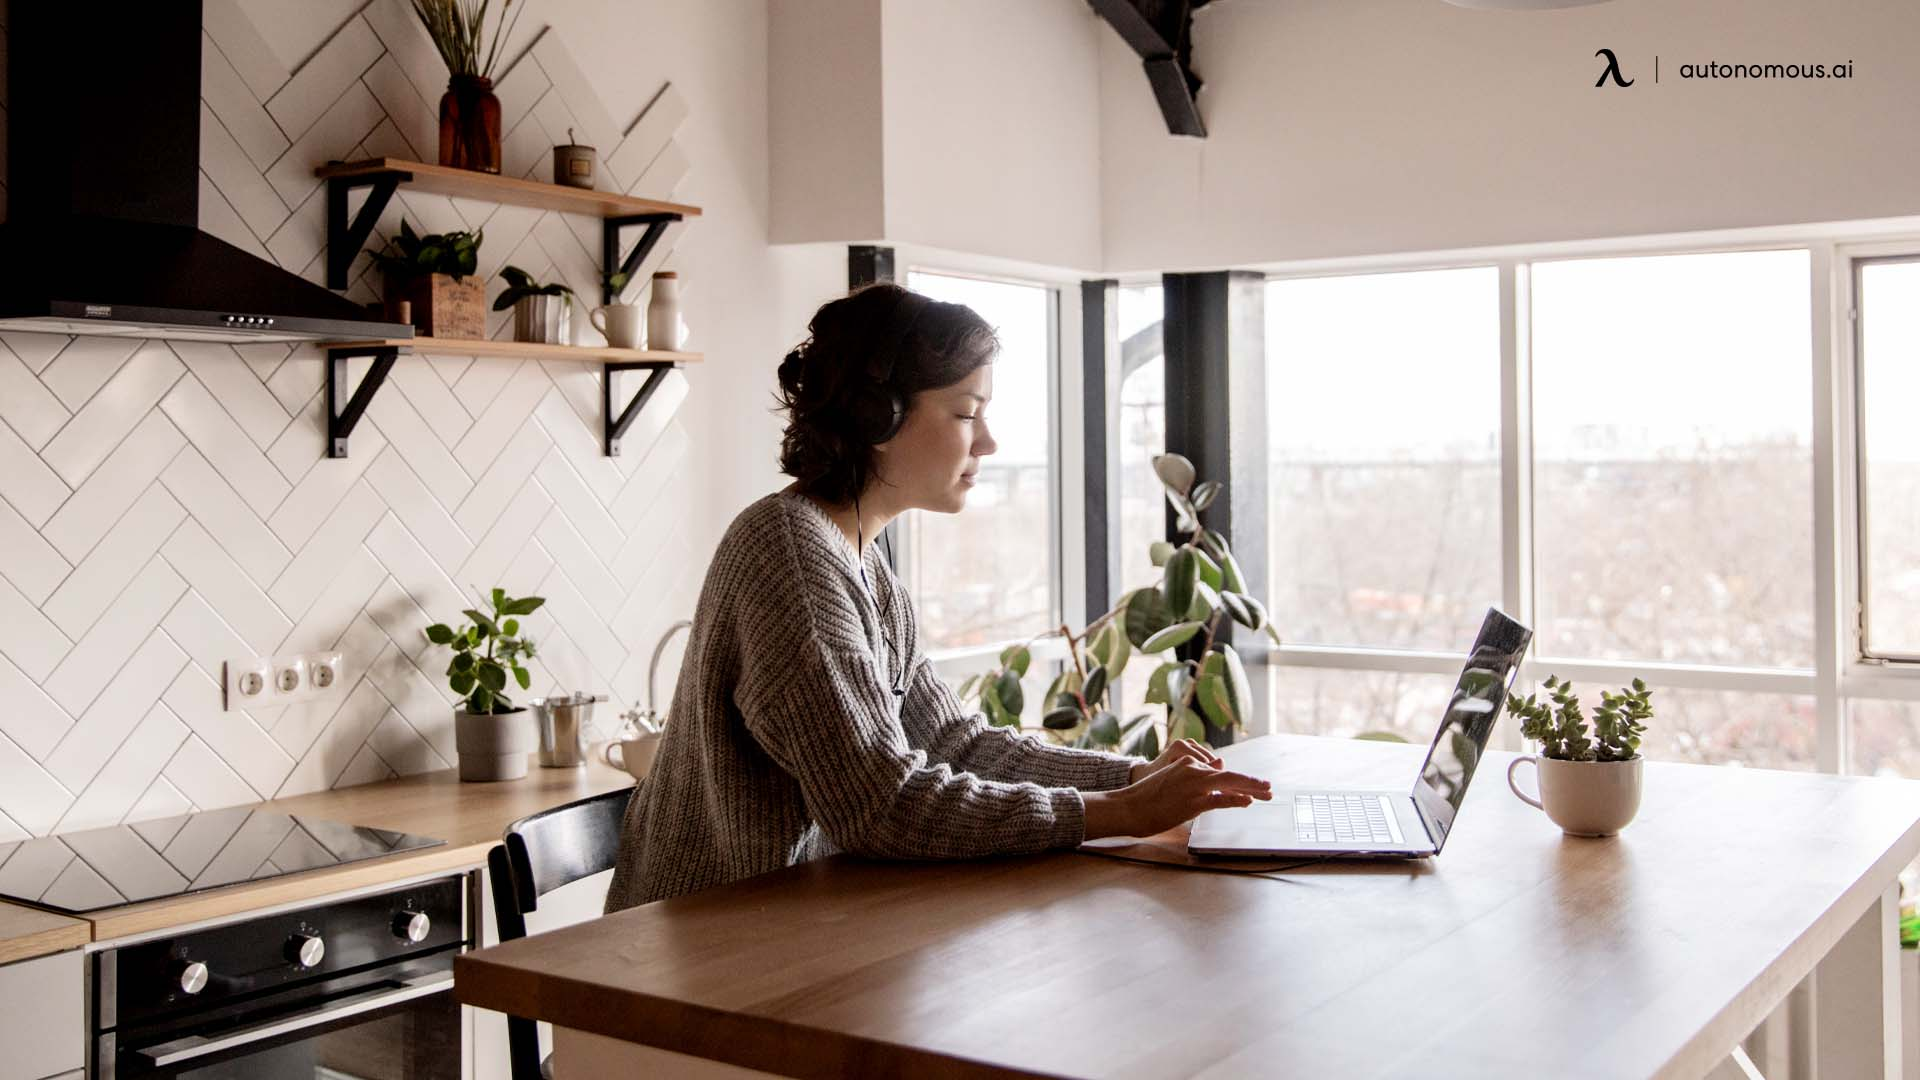 Common challenges of working remotely